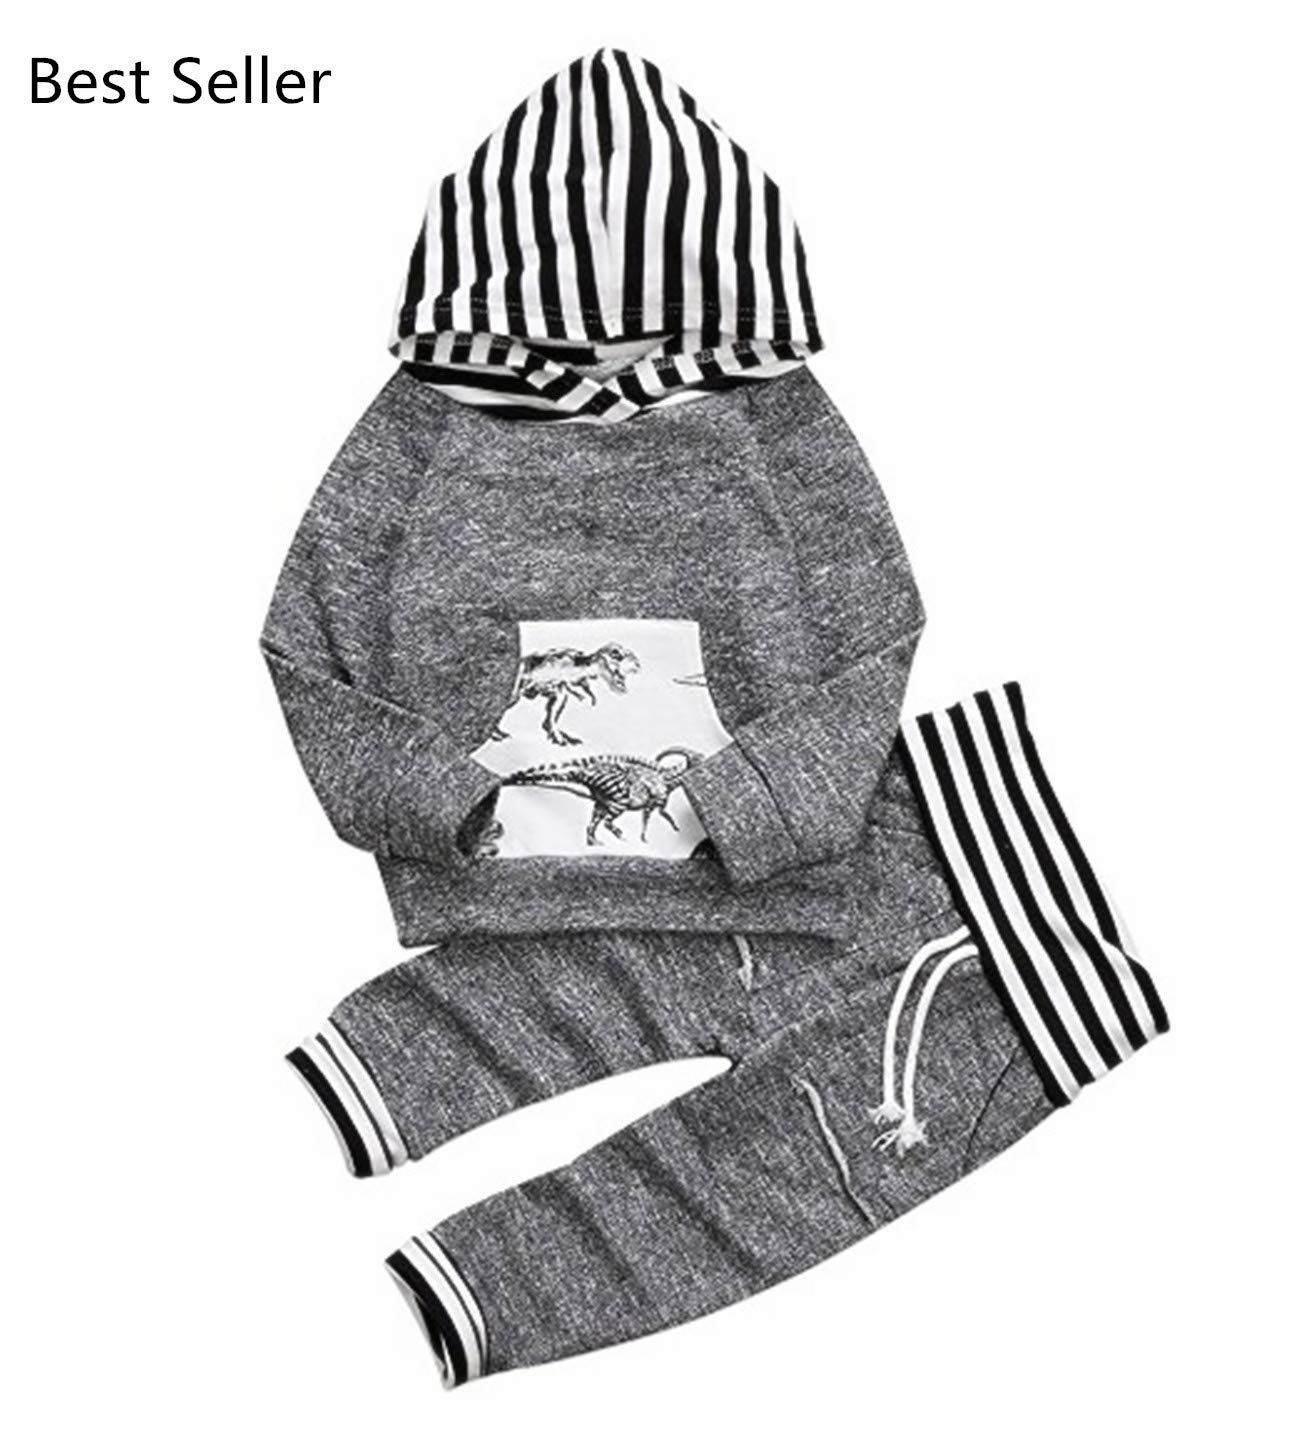 Toddler Infant Baby Boys Dinosaur Long Sleeve Hoodie Tops Sweatsuit Pants Outfit Set (6-12 Months, Grey)